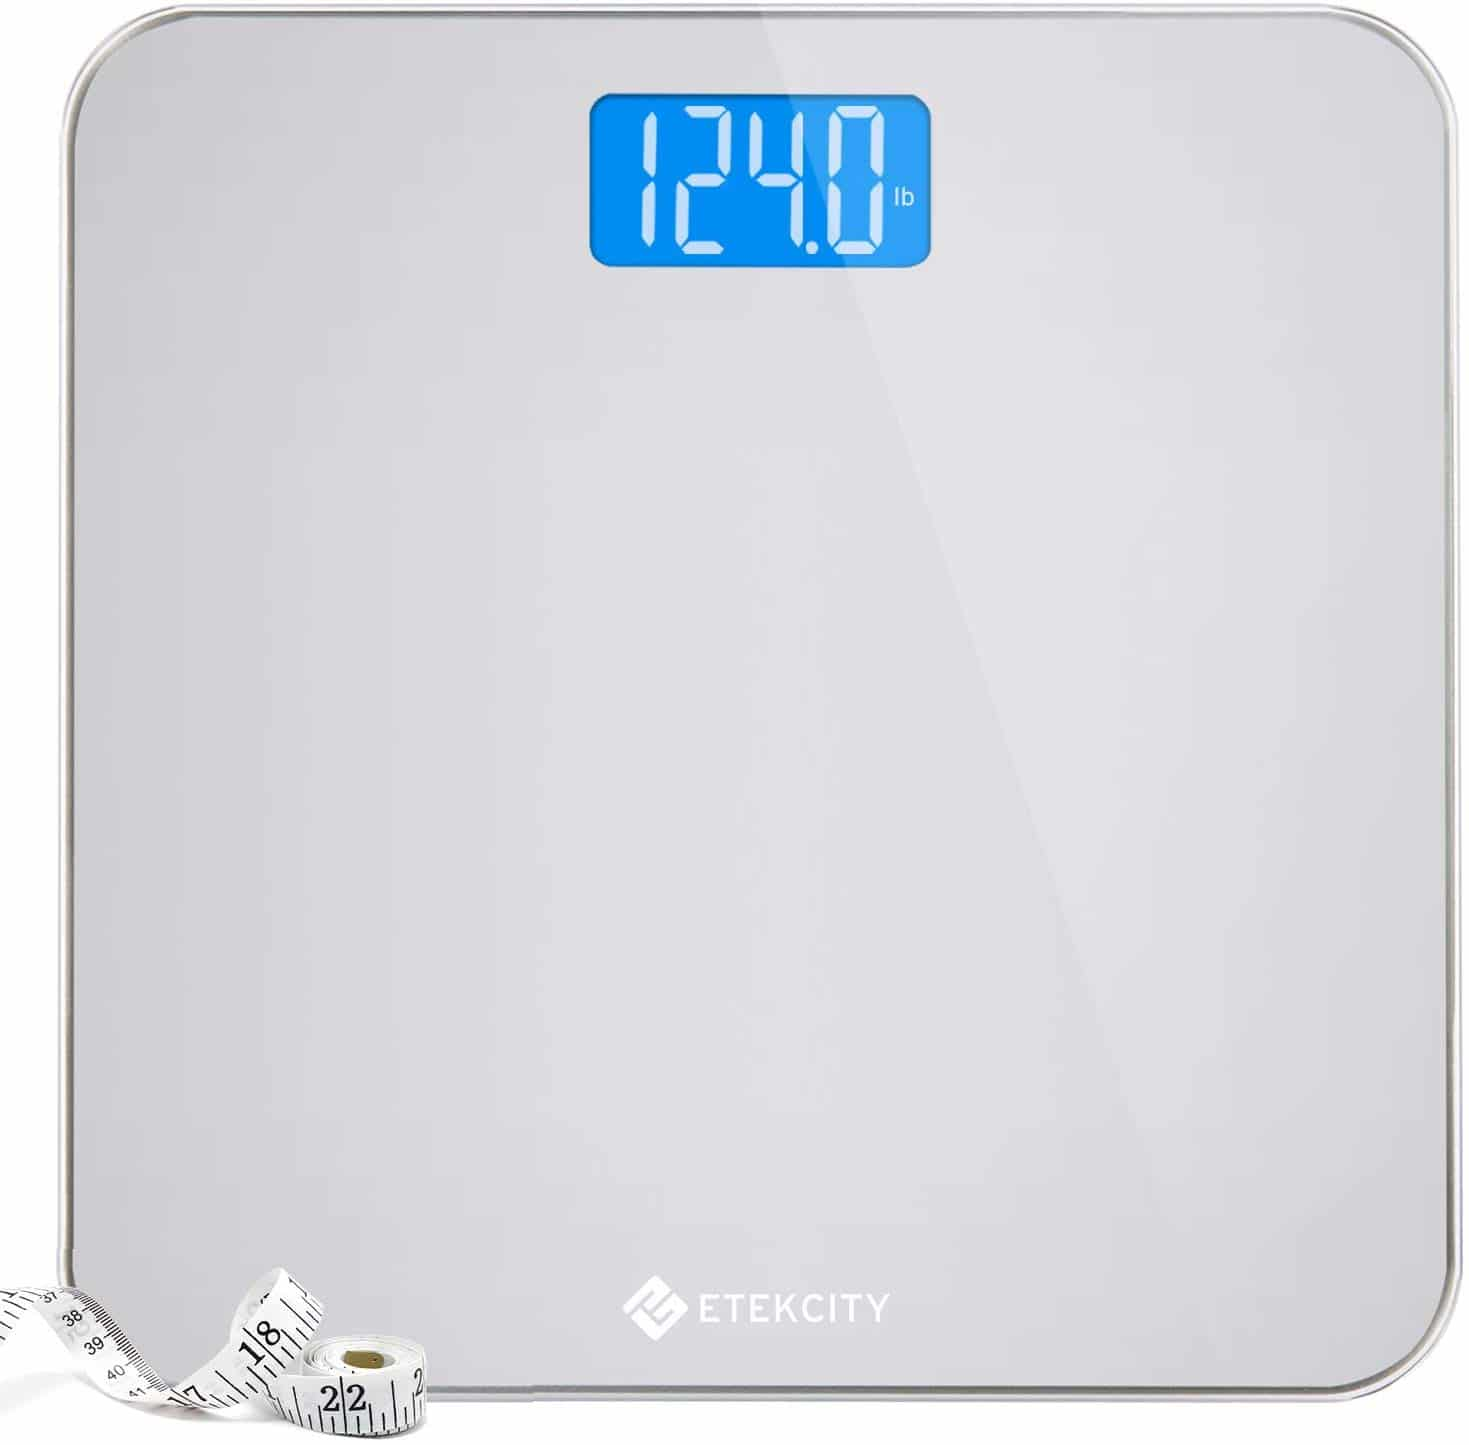 Etekcity Digital Body Scale